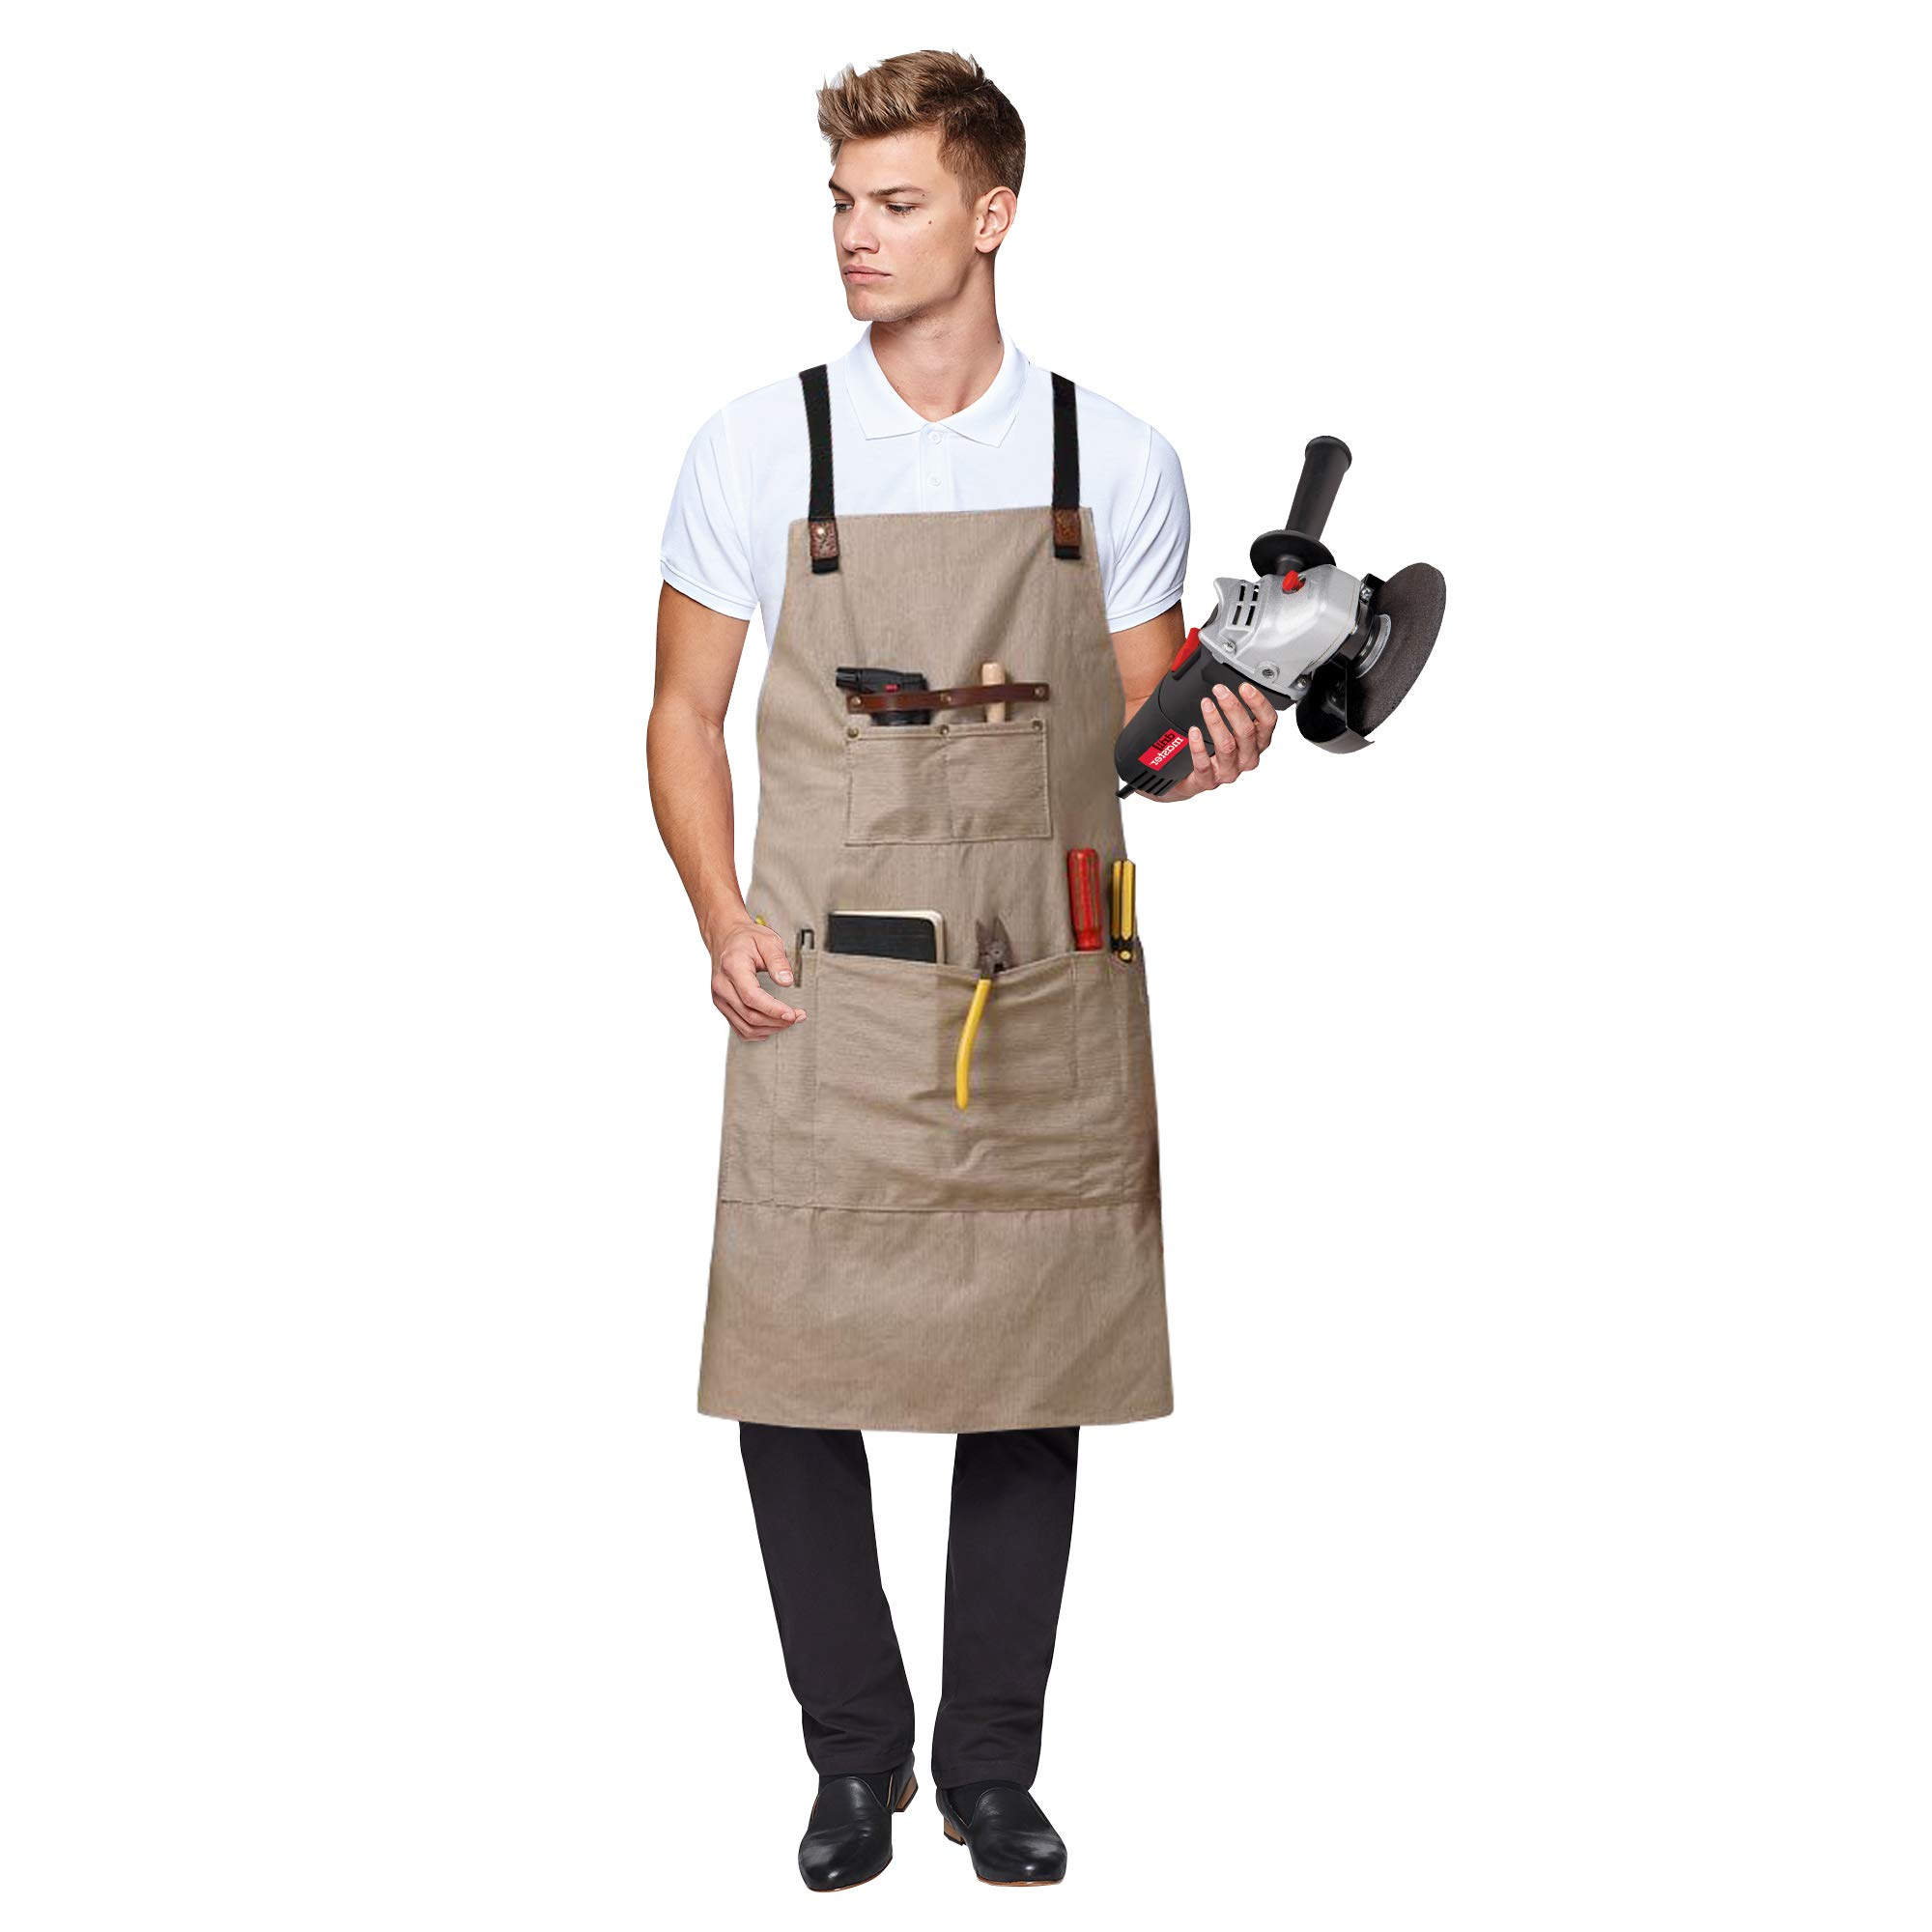 Canvas Work Apron with Cross-Back Straps Resistant Tools Aprons Perfect for Craftsmen Painter, Gardening, Work, Women Men (Gray)